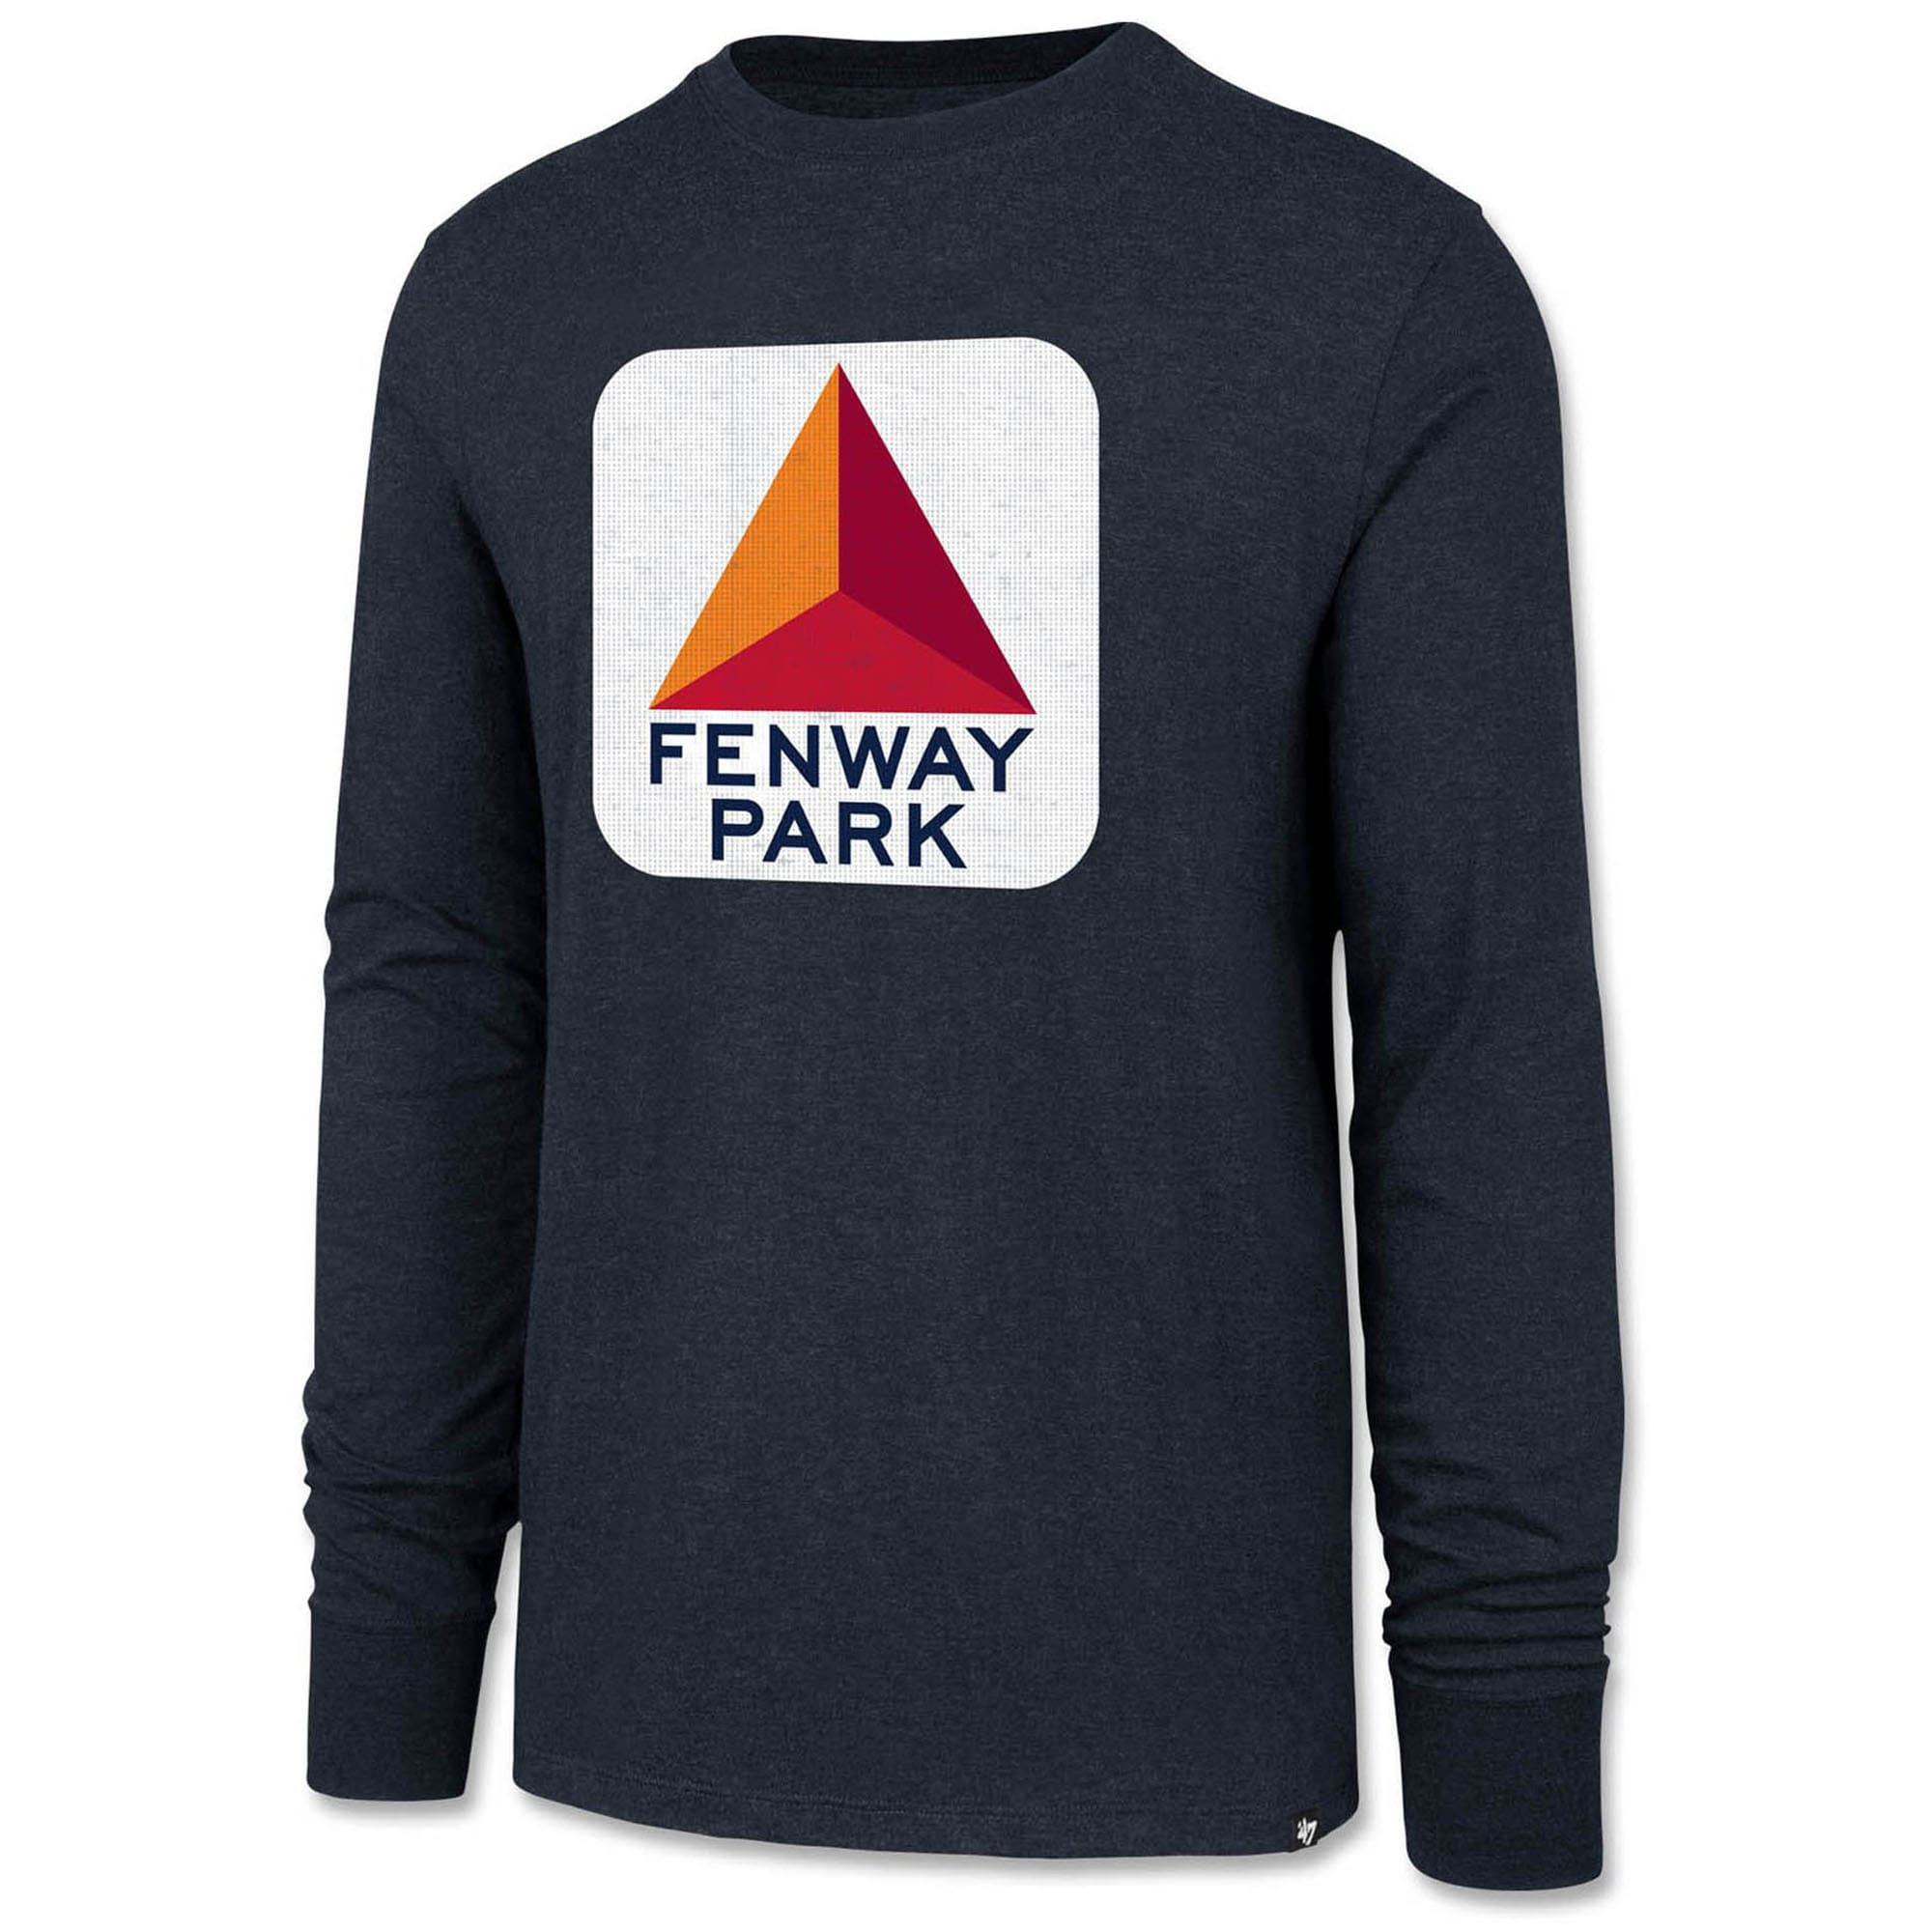 Boston Red Sox '47 Citgo Fenway Park Club Long Sleeve T-Shirt - Navy